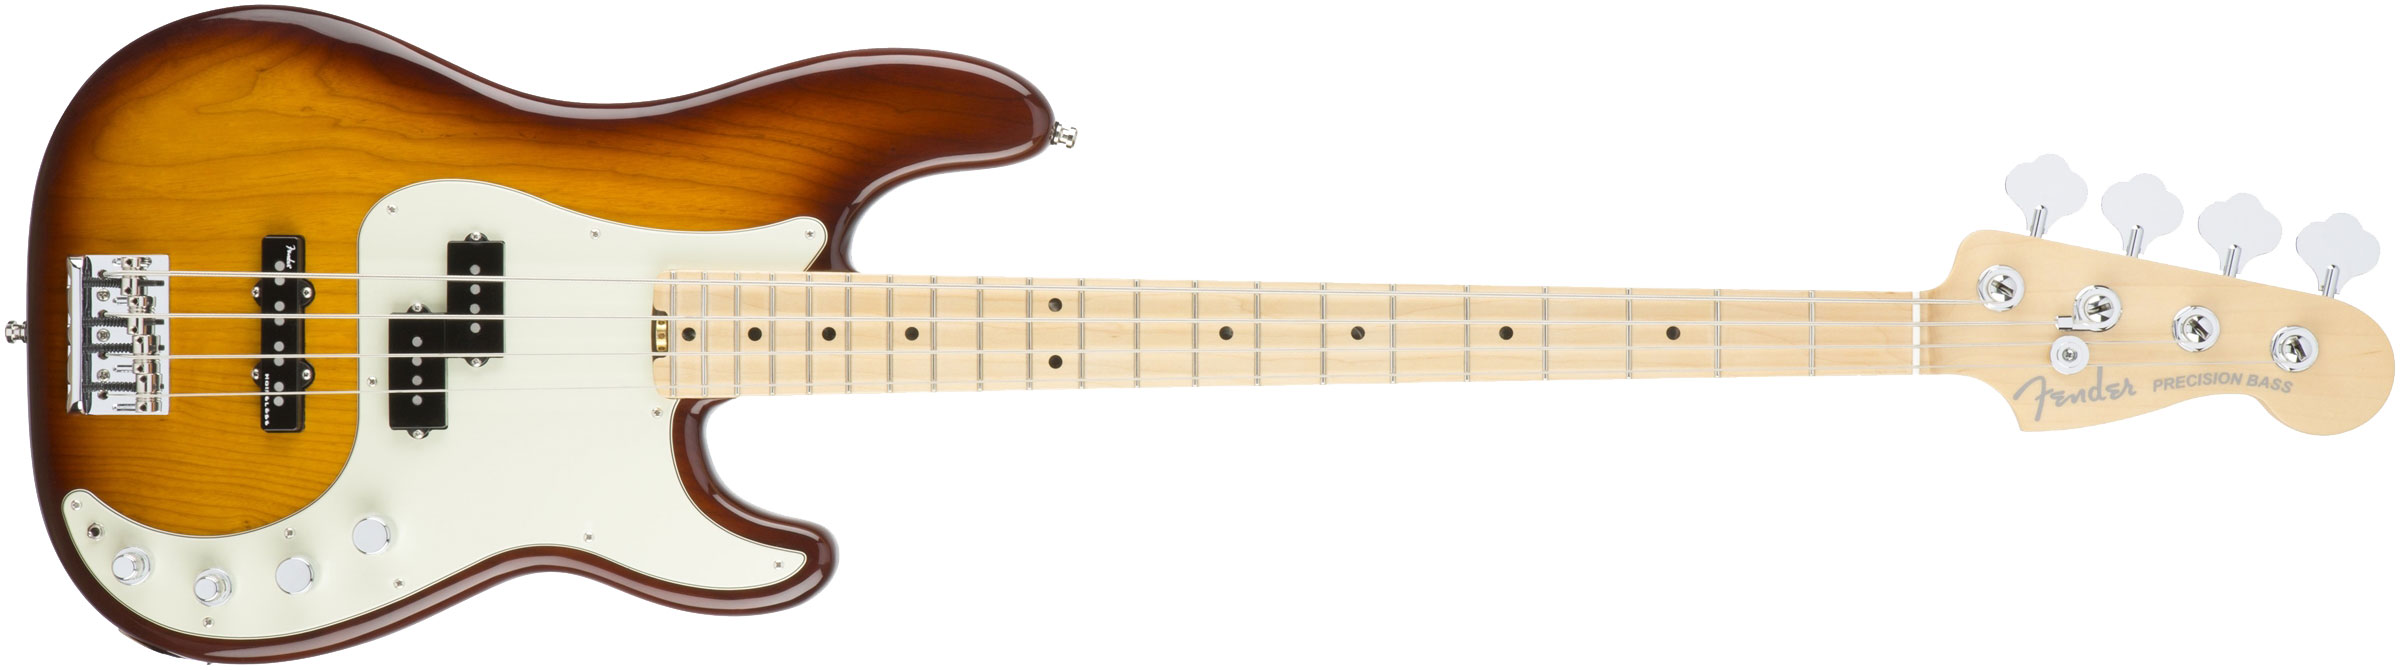 CONTRABAIXO FENDER AM ELITE PRECISION BASS ASH MAPLE 019-6902-752 TOBACCO SUNBURST